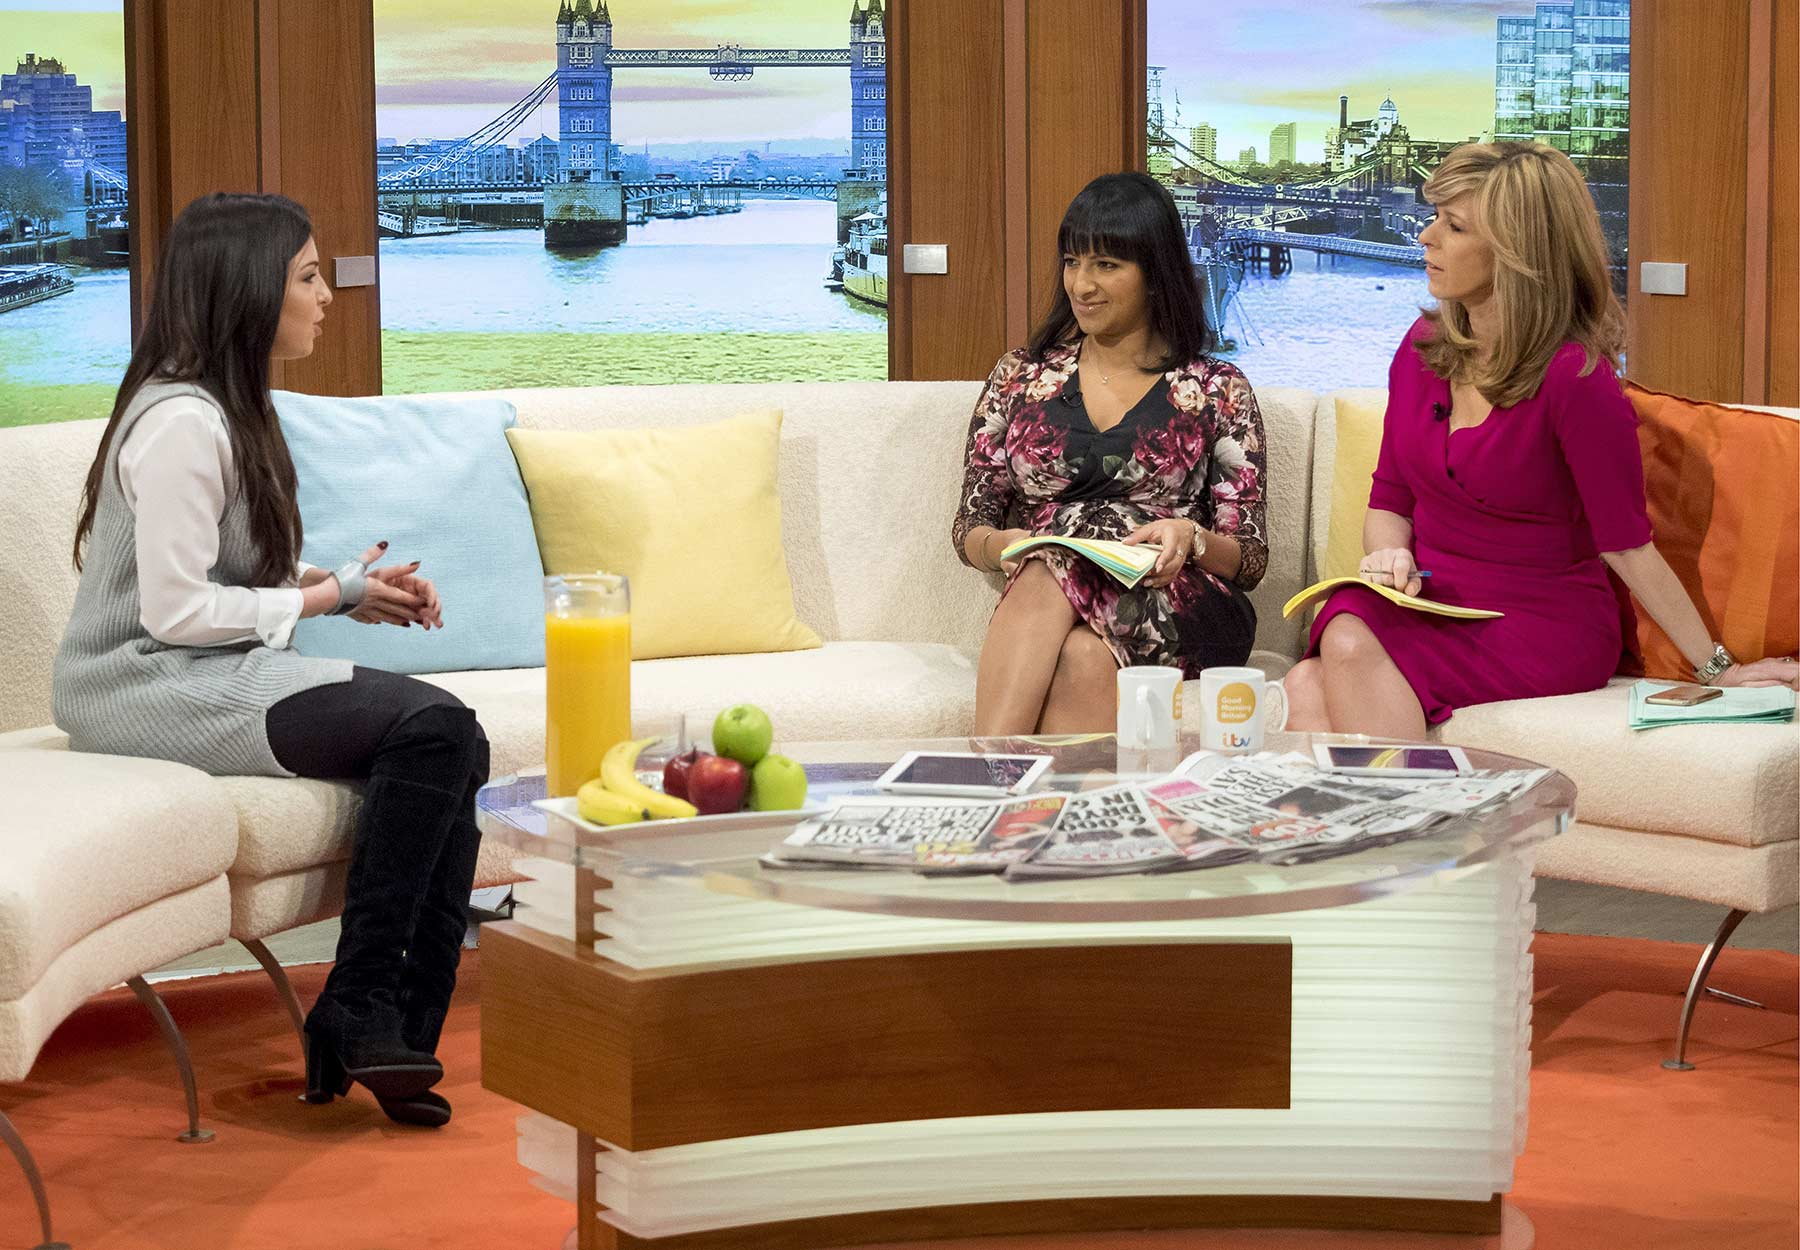 Louisa Lytton at Good Morning Britain